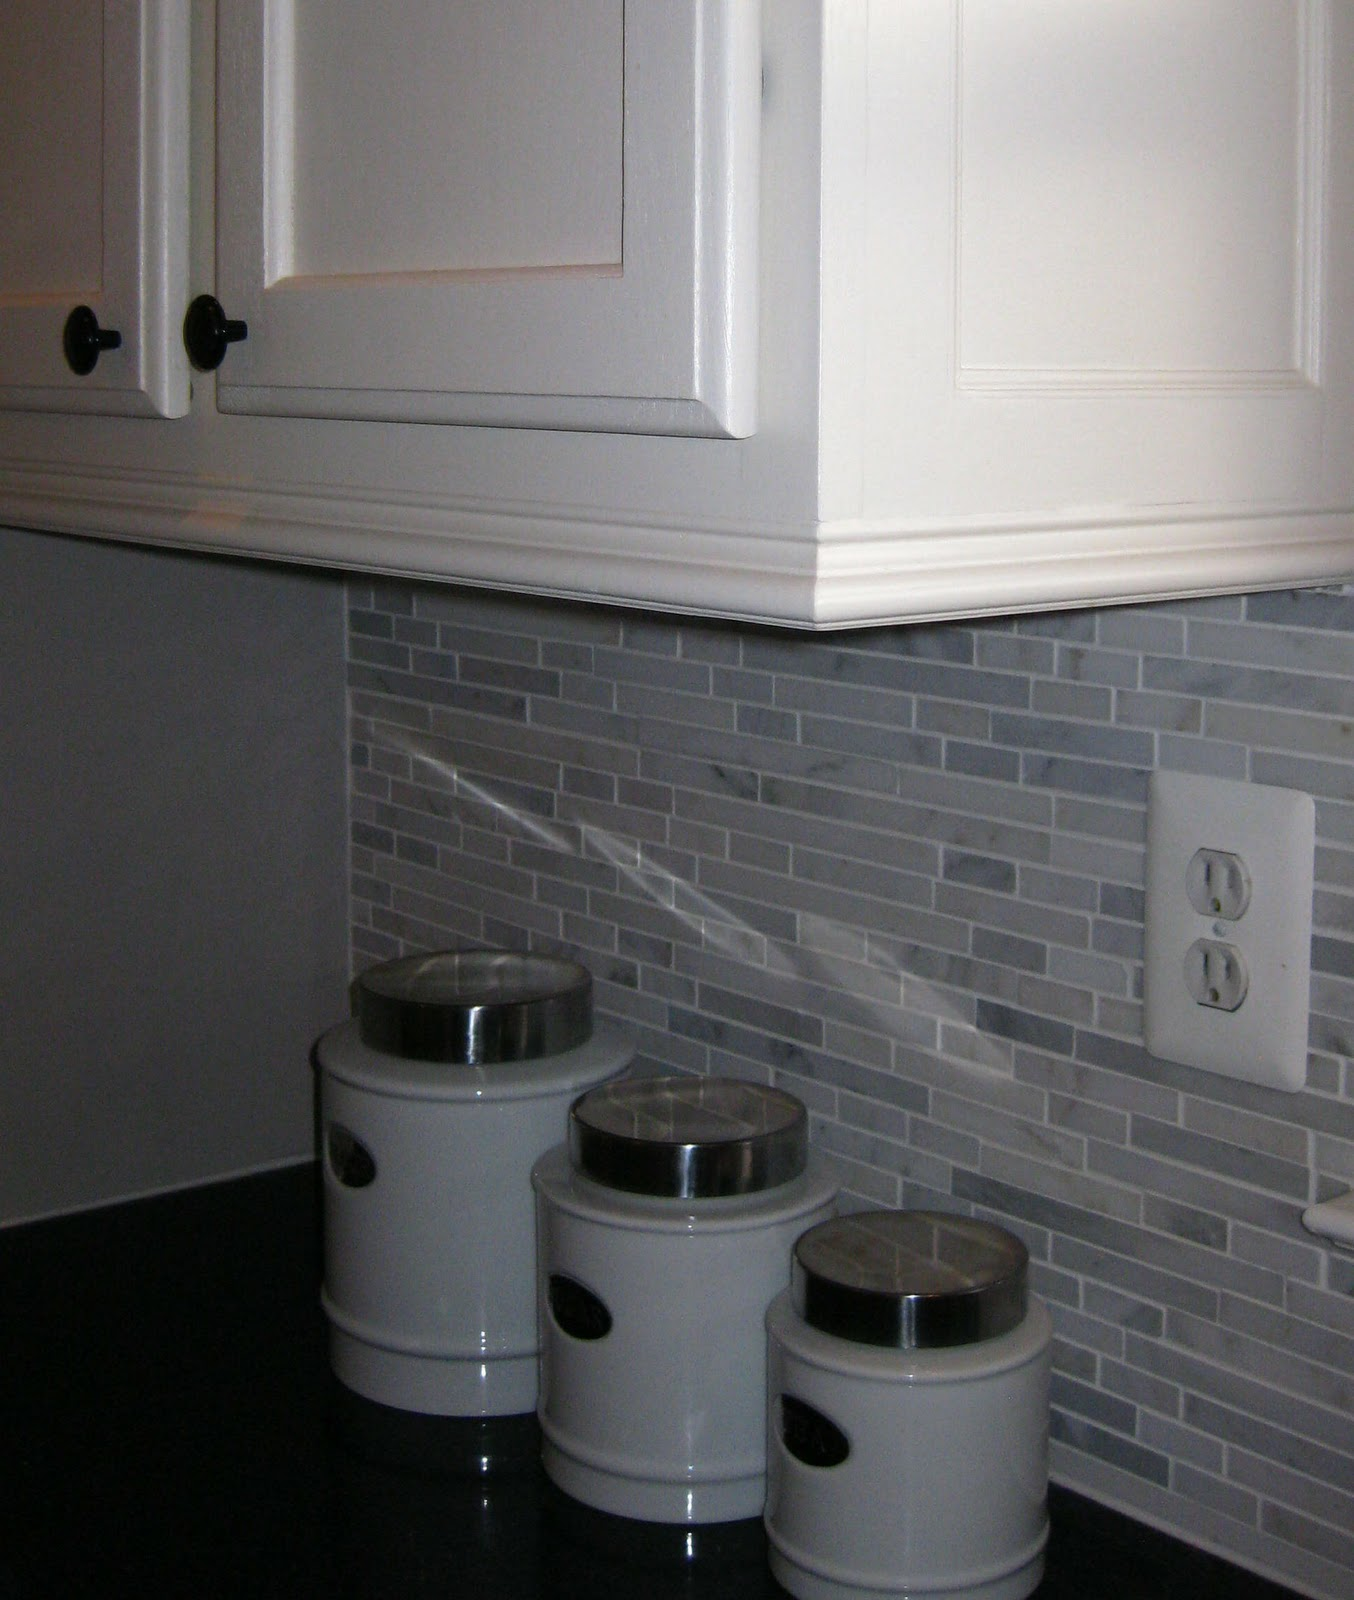 Crown Moulding Above Kitchen Cabinets Adding Moldings To Your Kitchen Cabinets Remodelando La Casa